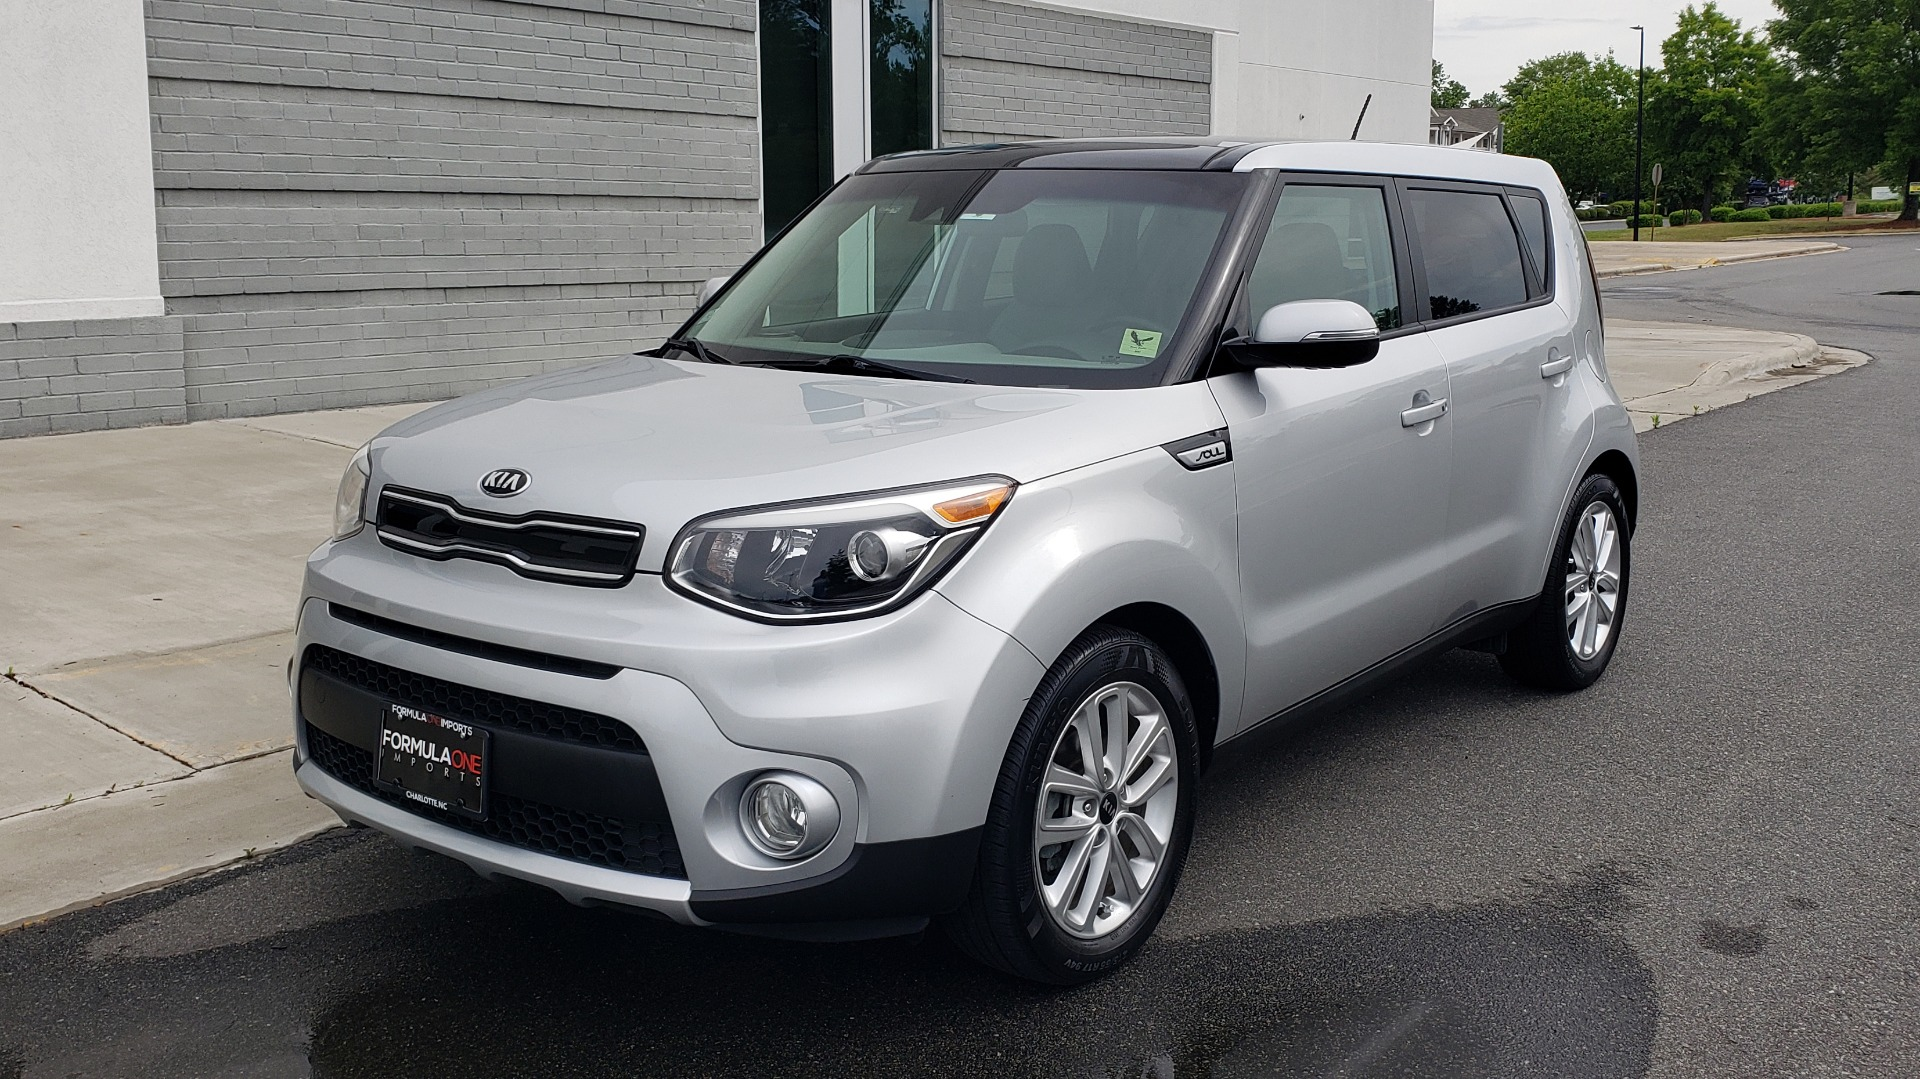 Used 2017 Kia SOUL PLUS / NAV / SUNROOF / LEATHER / HTD STS / REARVIEW for sale $16,995 at Formula Imports in Charlotte NC 28227 5